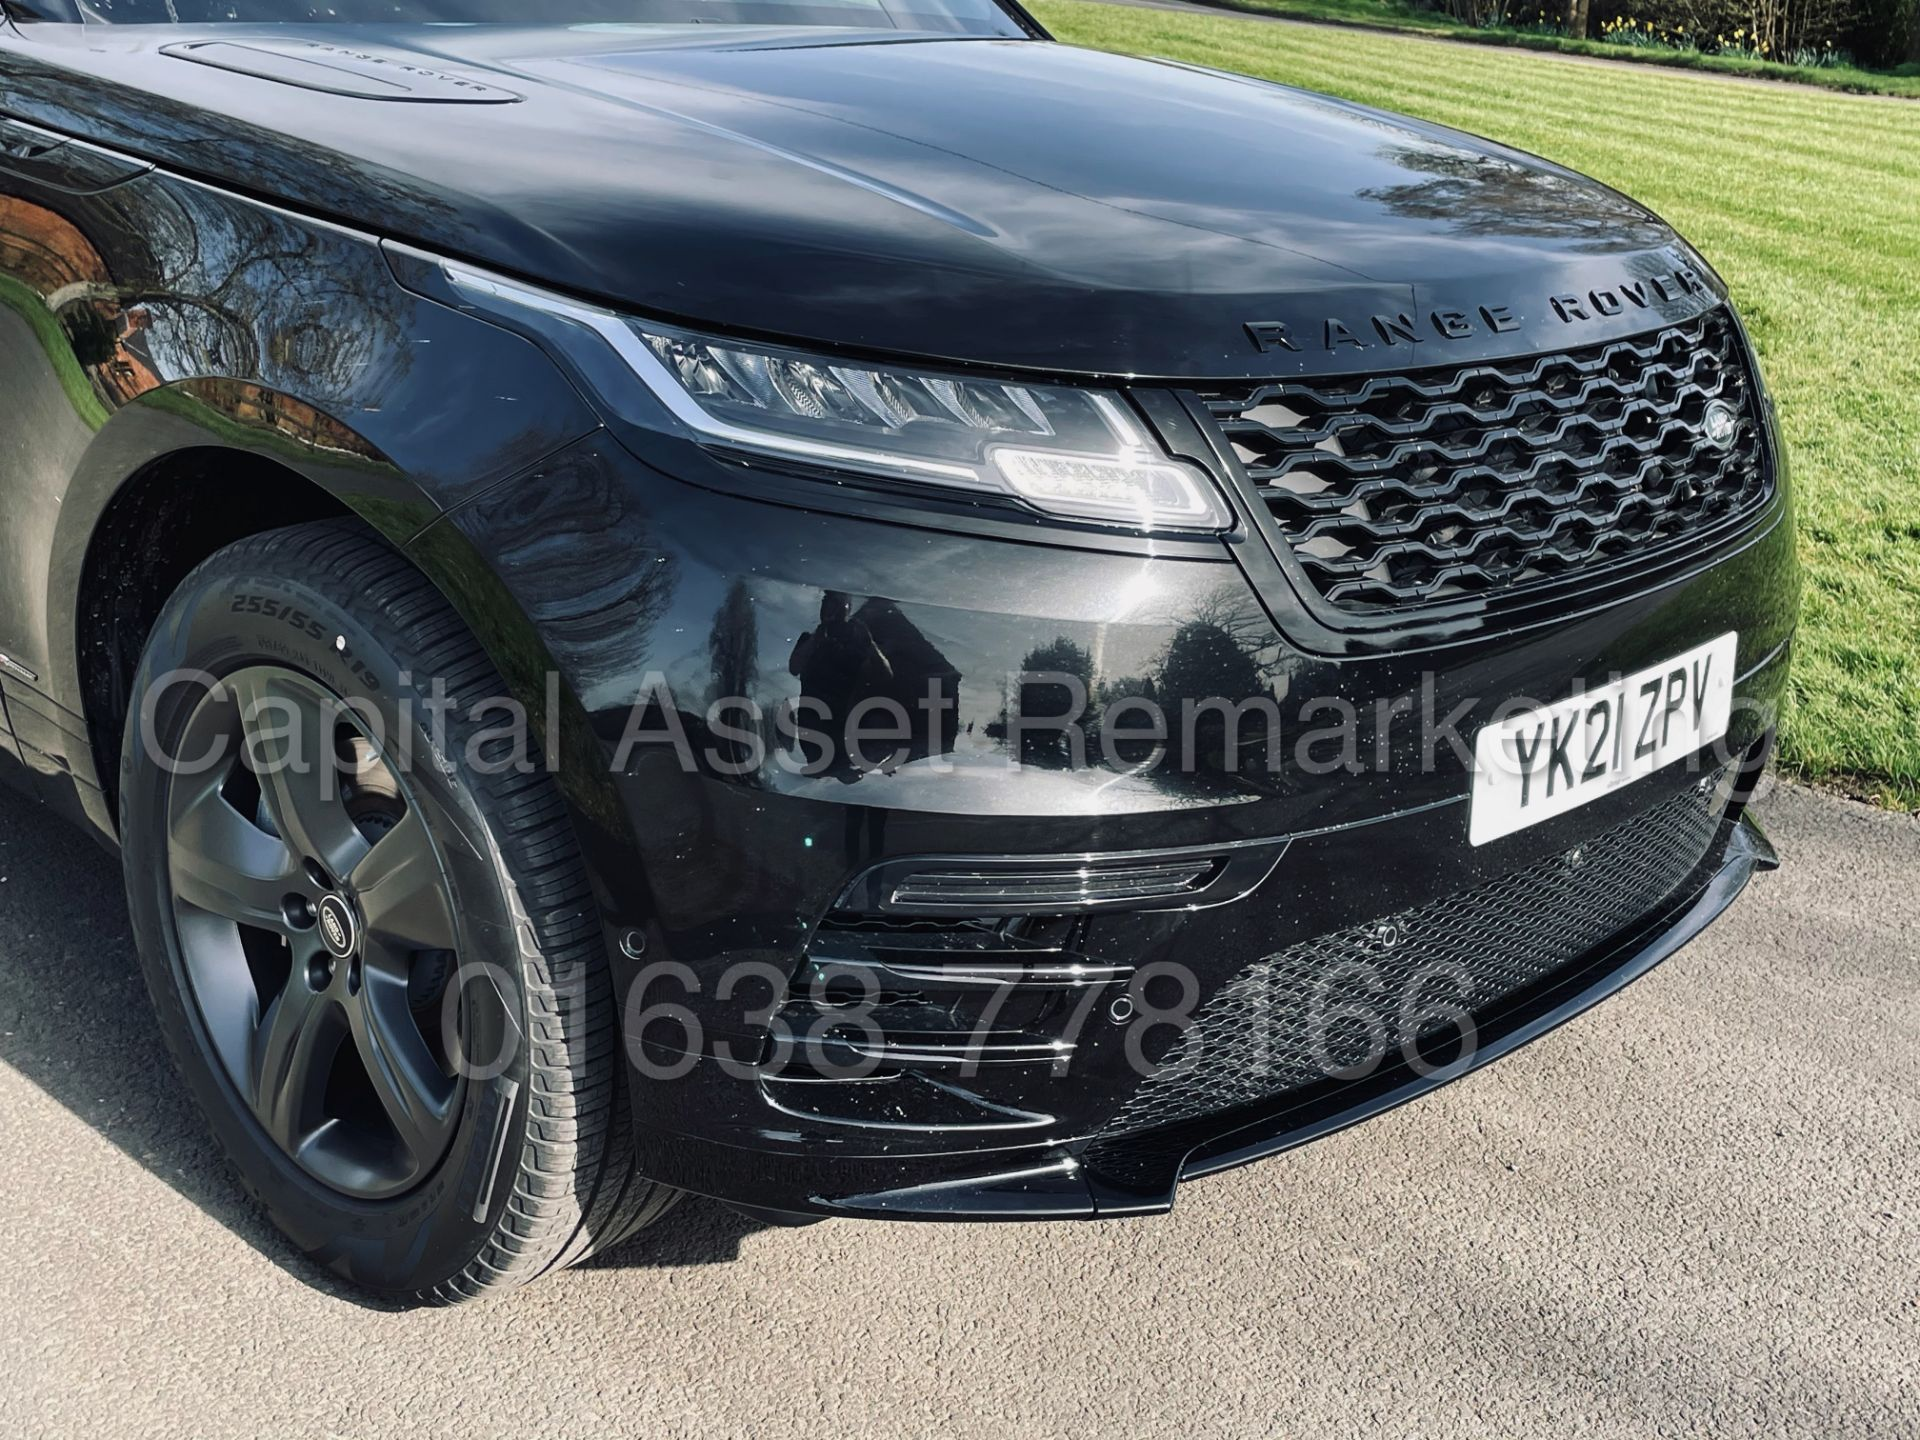 (On Sale) RANGE ROVER VELAR *R-DYNAMIC* SUV (2021) *8 SPEED AUTO - LEATHER* (DELIVERY MILES) - Image 15 of 50